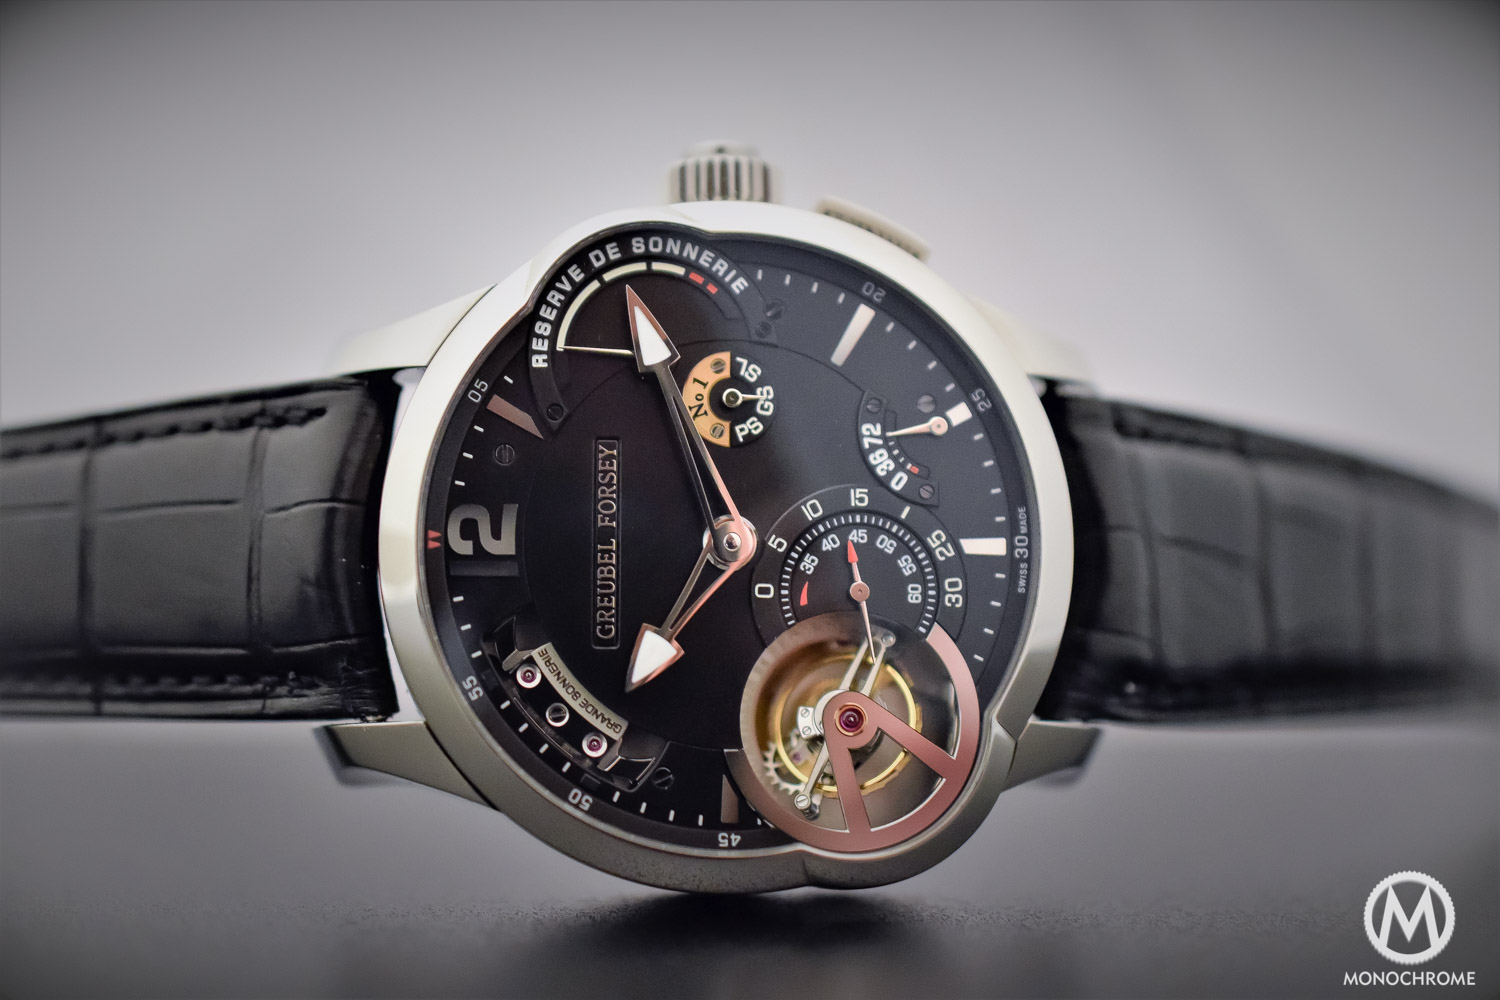 Greubel Forsey Grande Sonnerie - SIHH 2017 review